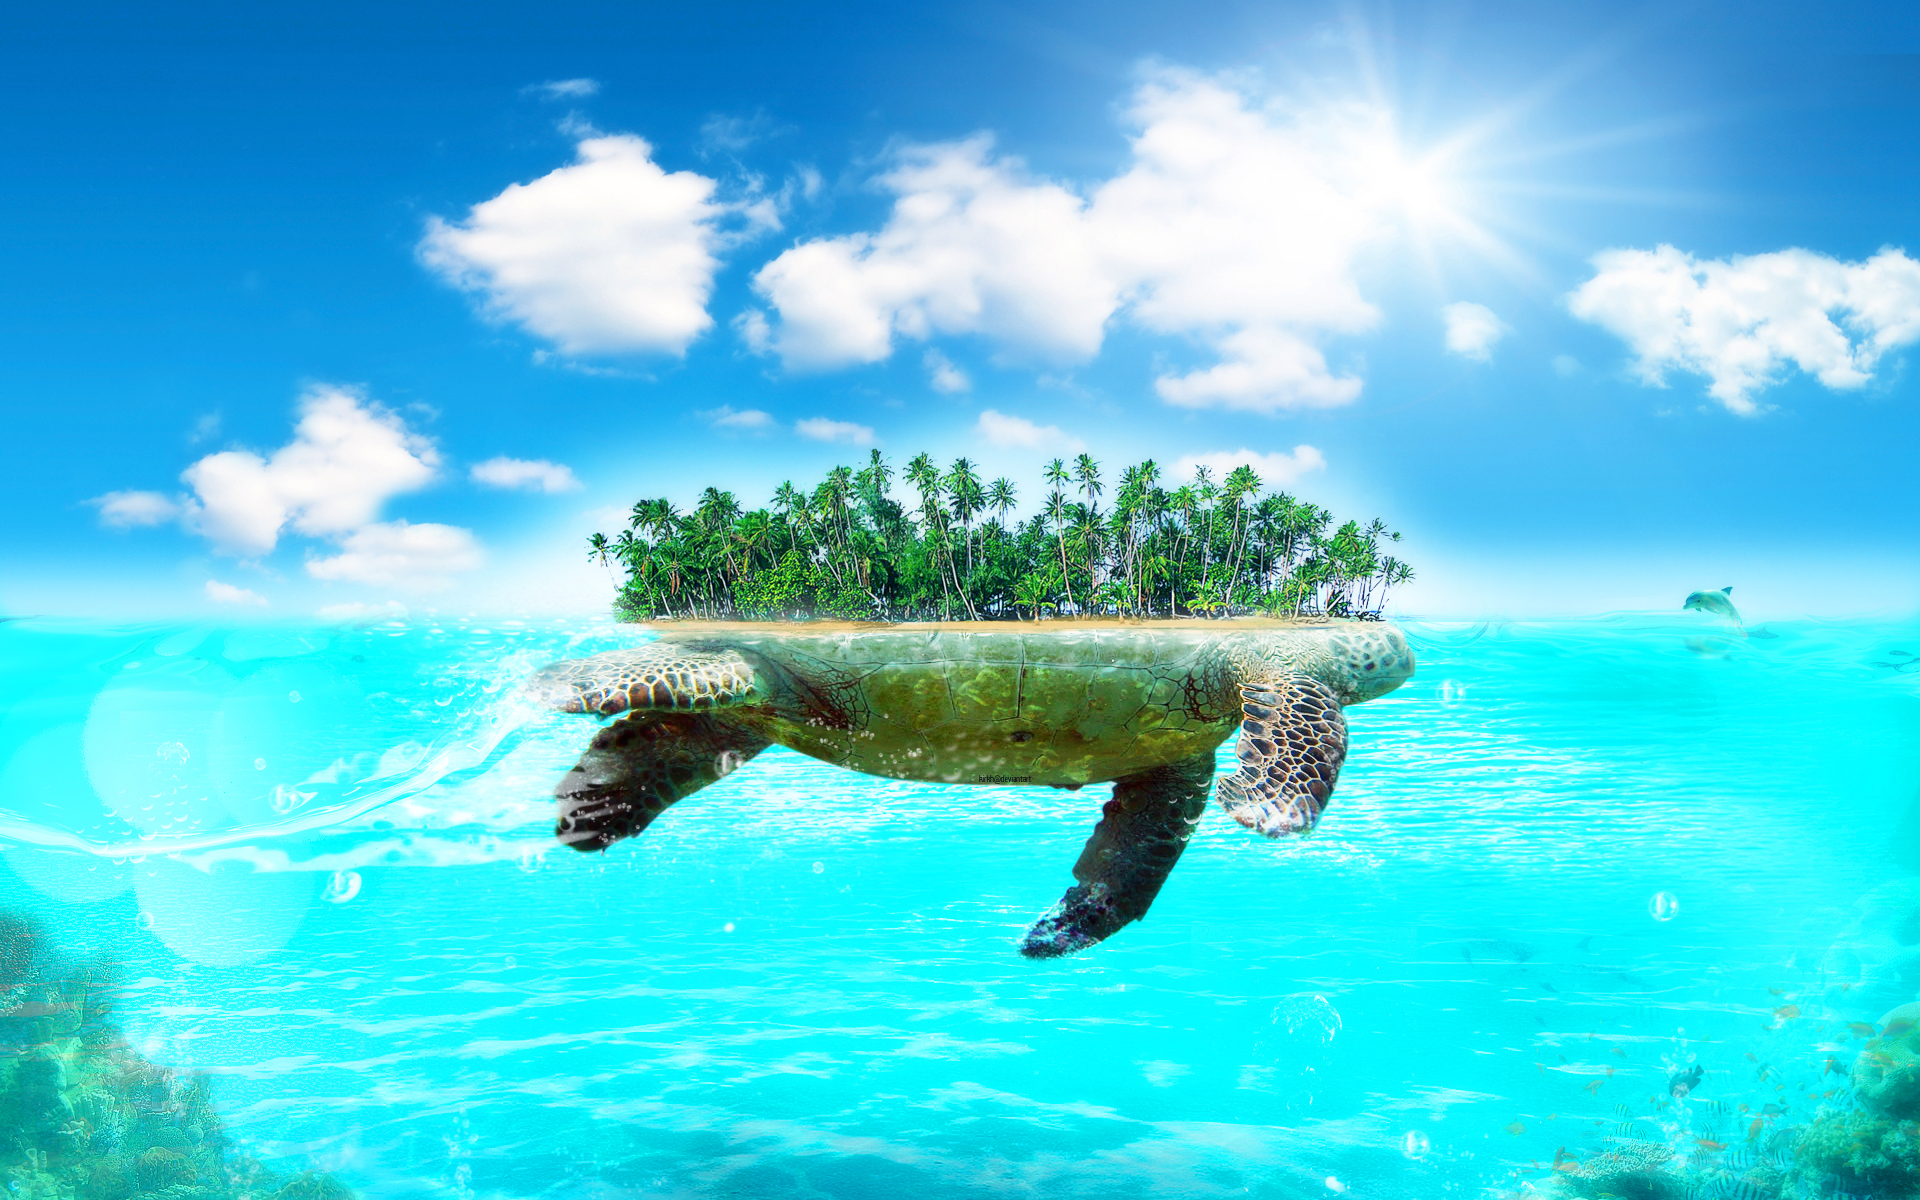 Turtle wallpapers best wallpapers - Large screen wallpapers free ...